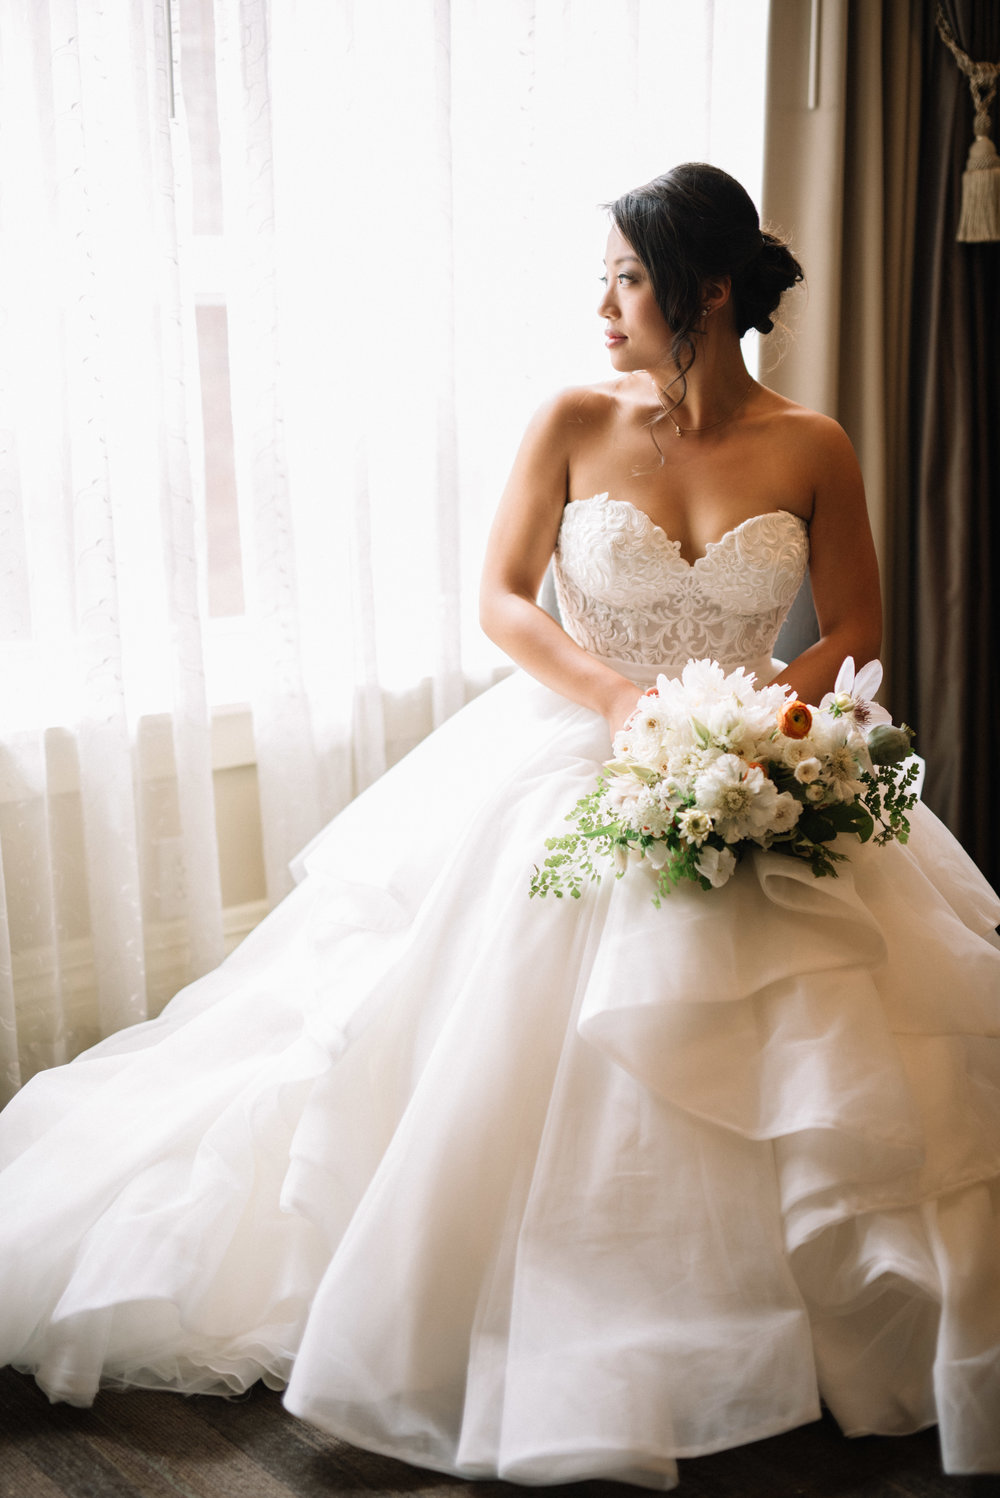 Lace bodice with ruffled skirt wedding gown